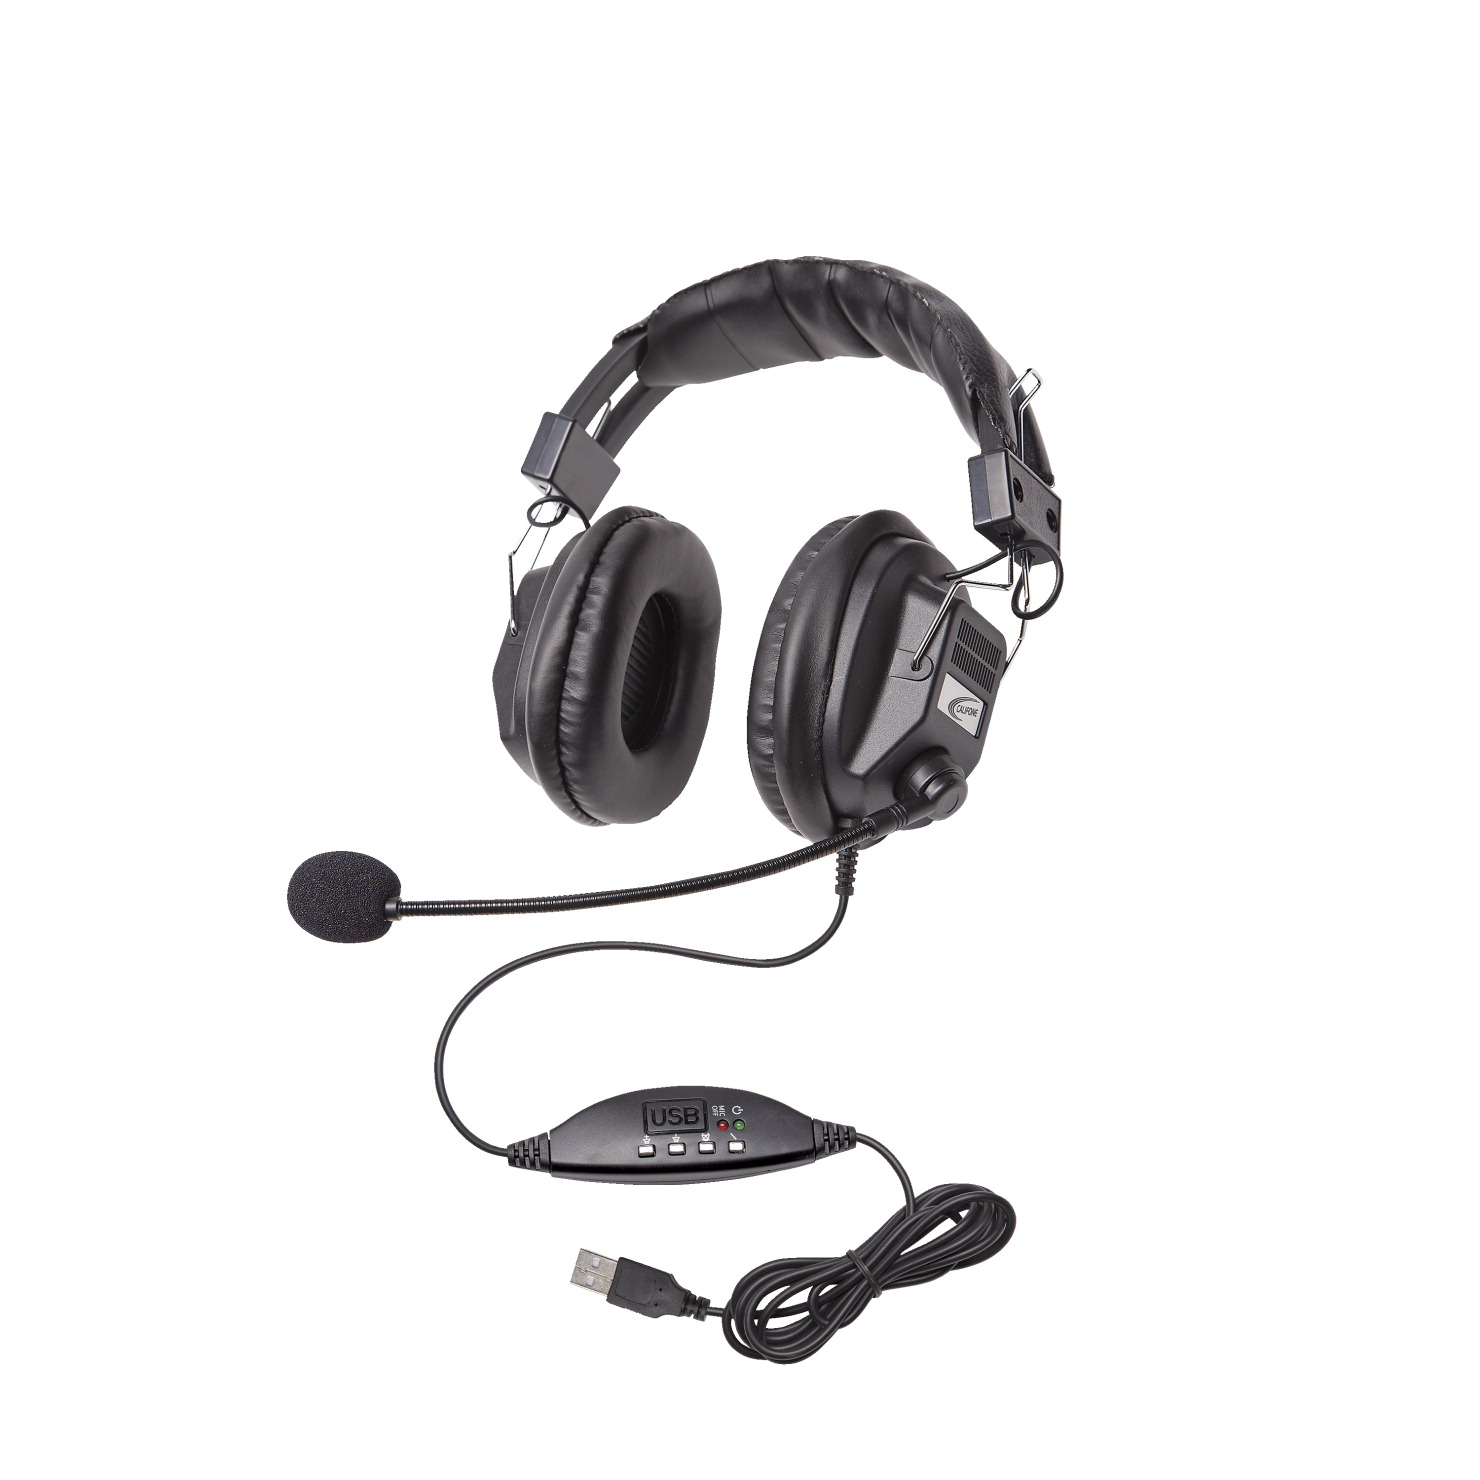 Califone 3068MUSB Headset With USB Plug, Black